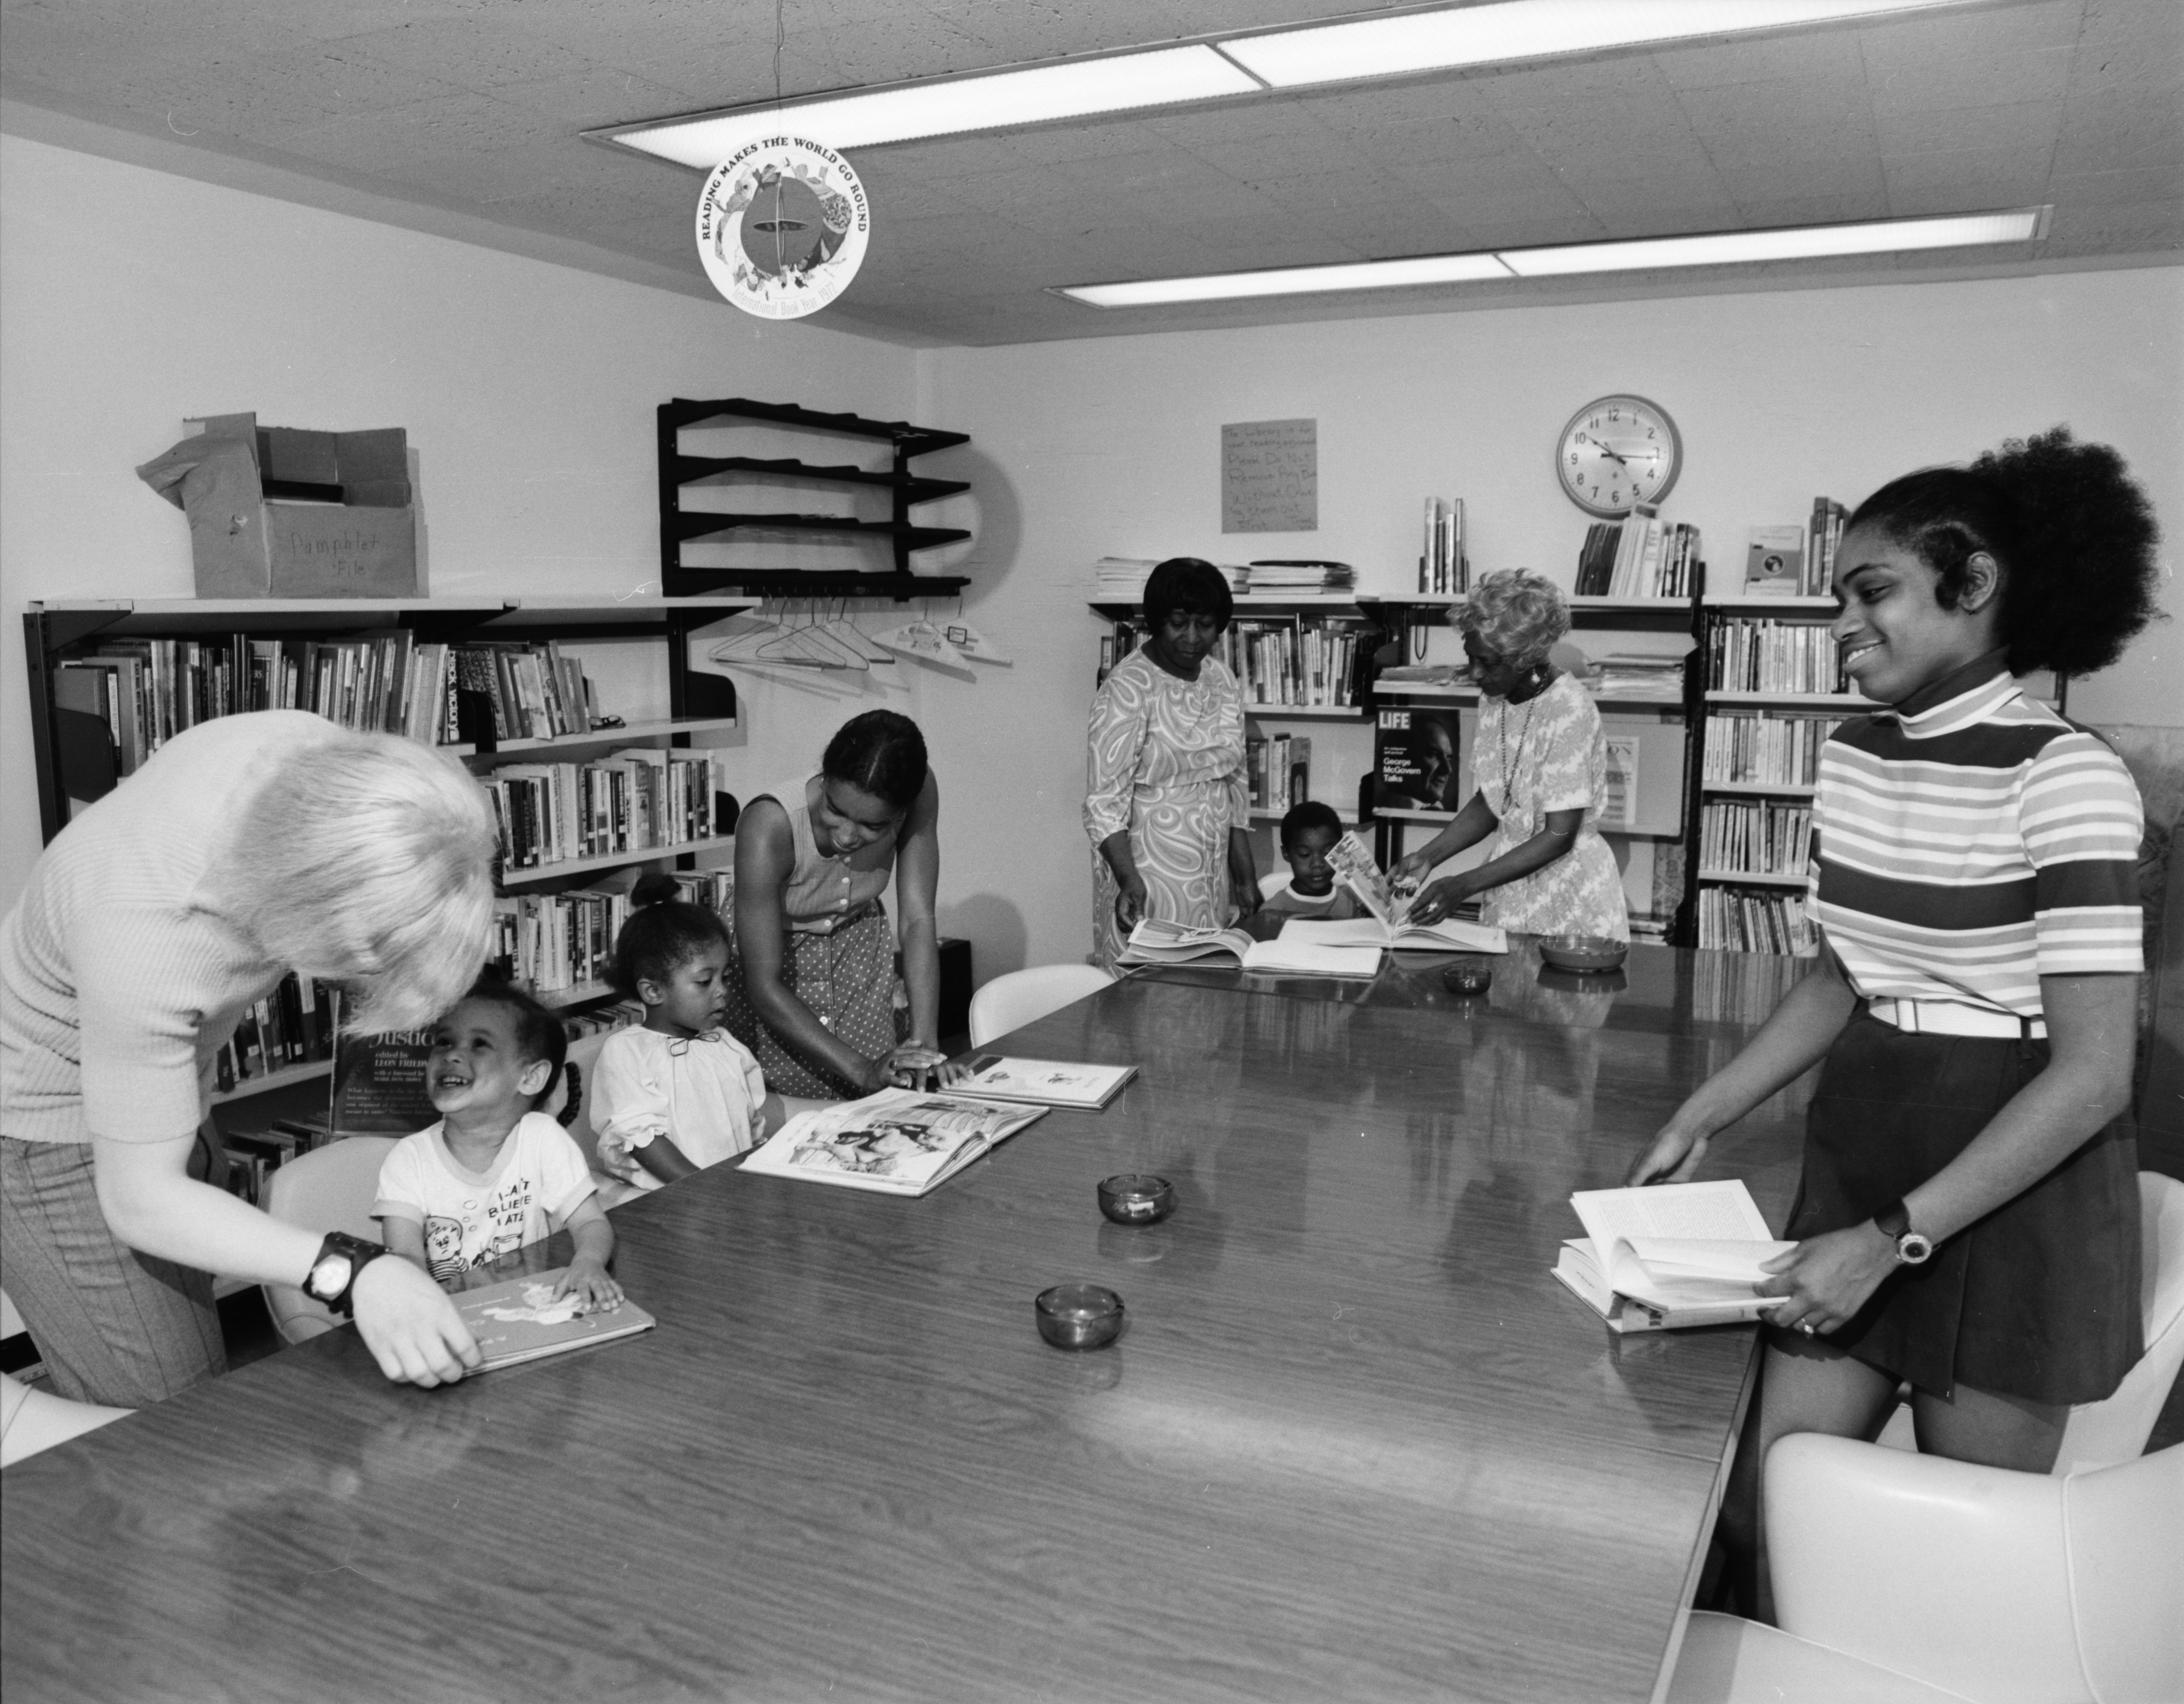 Children Get Help Reading at the Ann Arbor Community Center's Library, July 1972 image